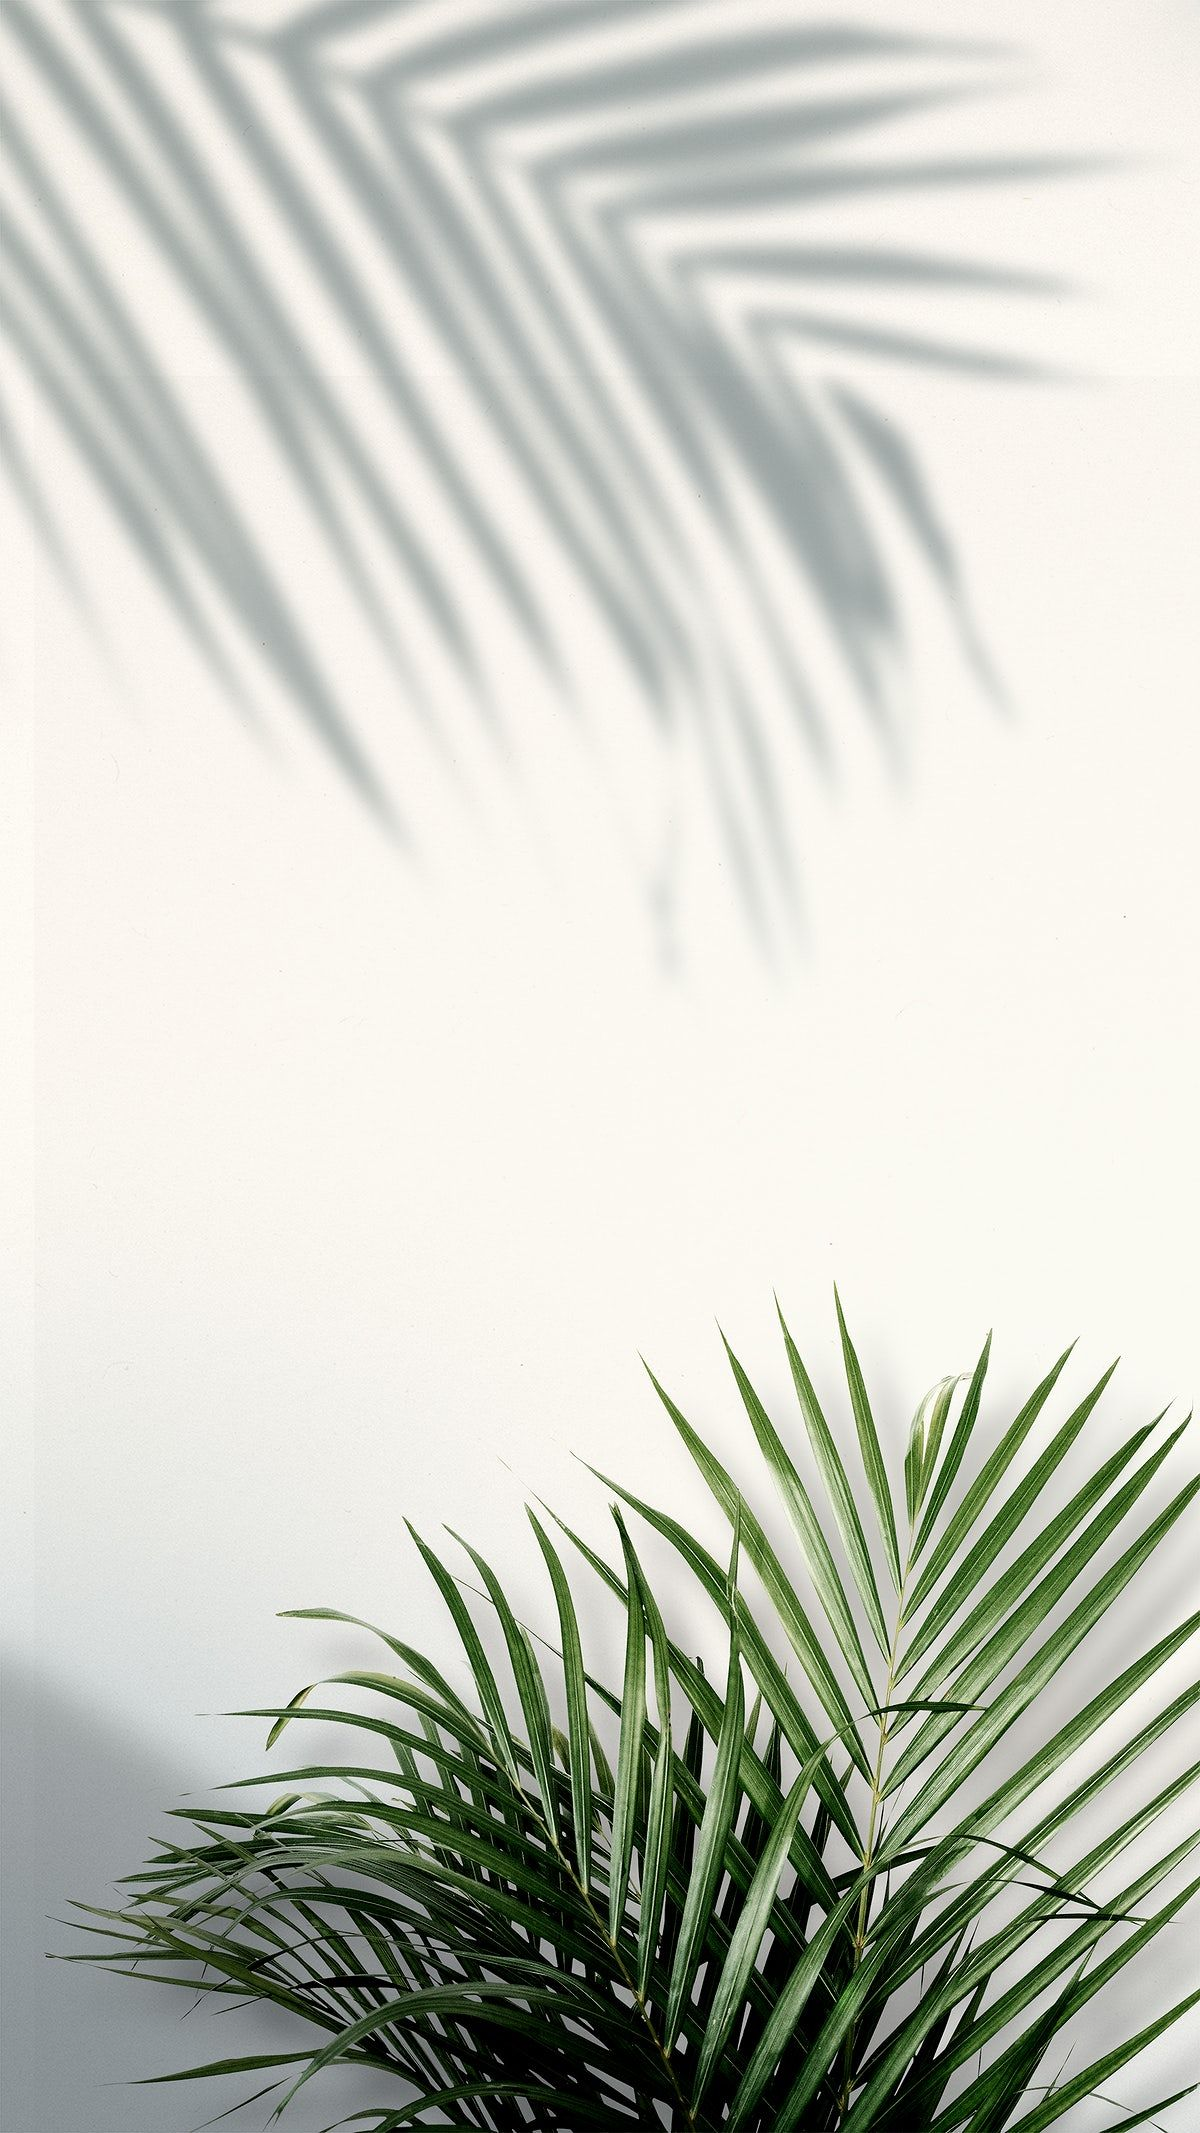 Download free png of Palm leaf border design element on a white background